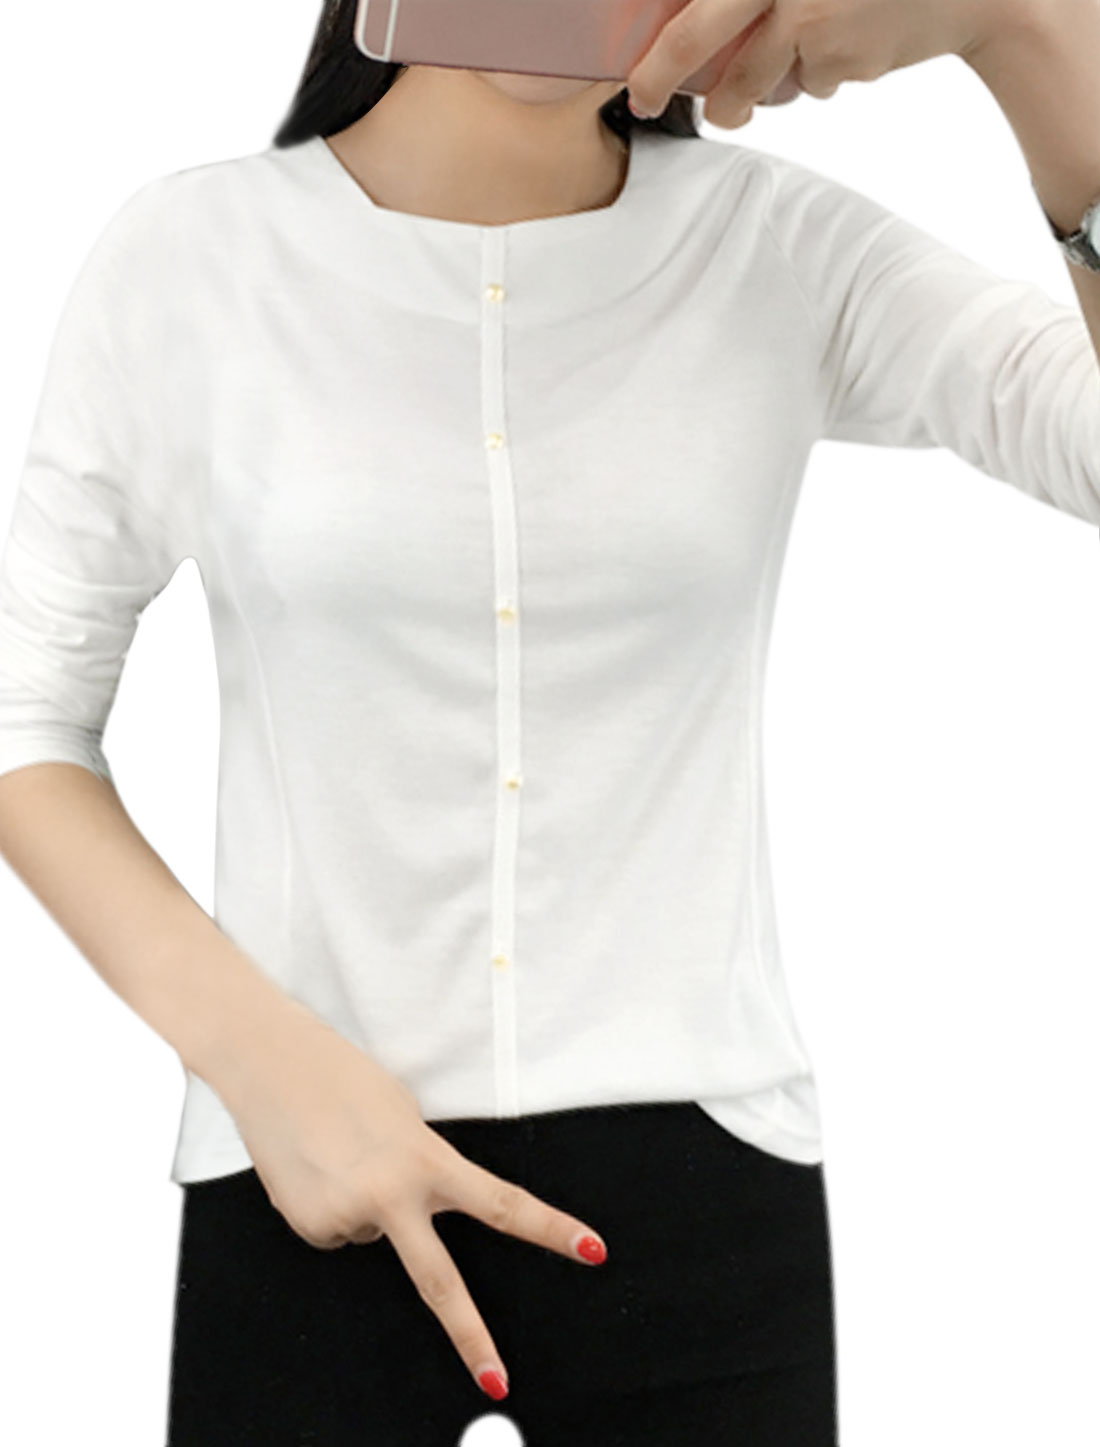 Ladies Square Neckline Beaded Slim Fit T-Shirt White M